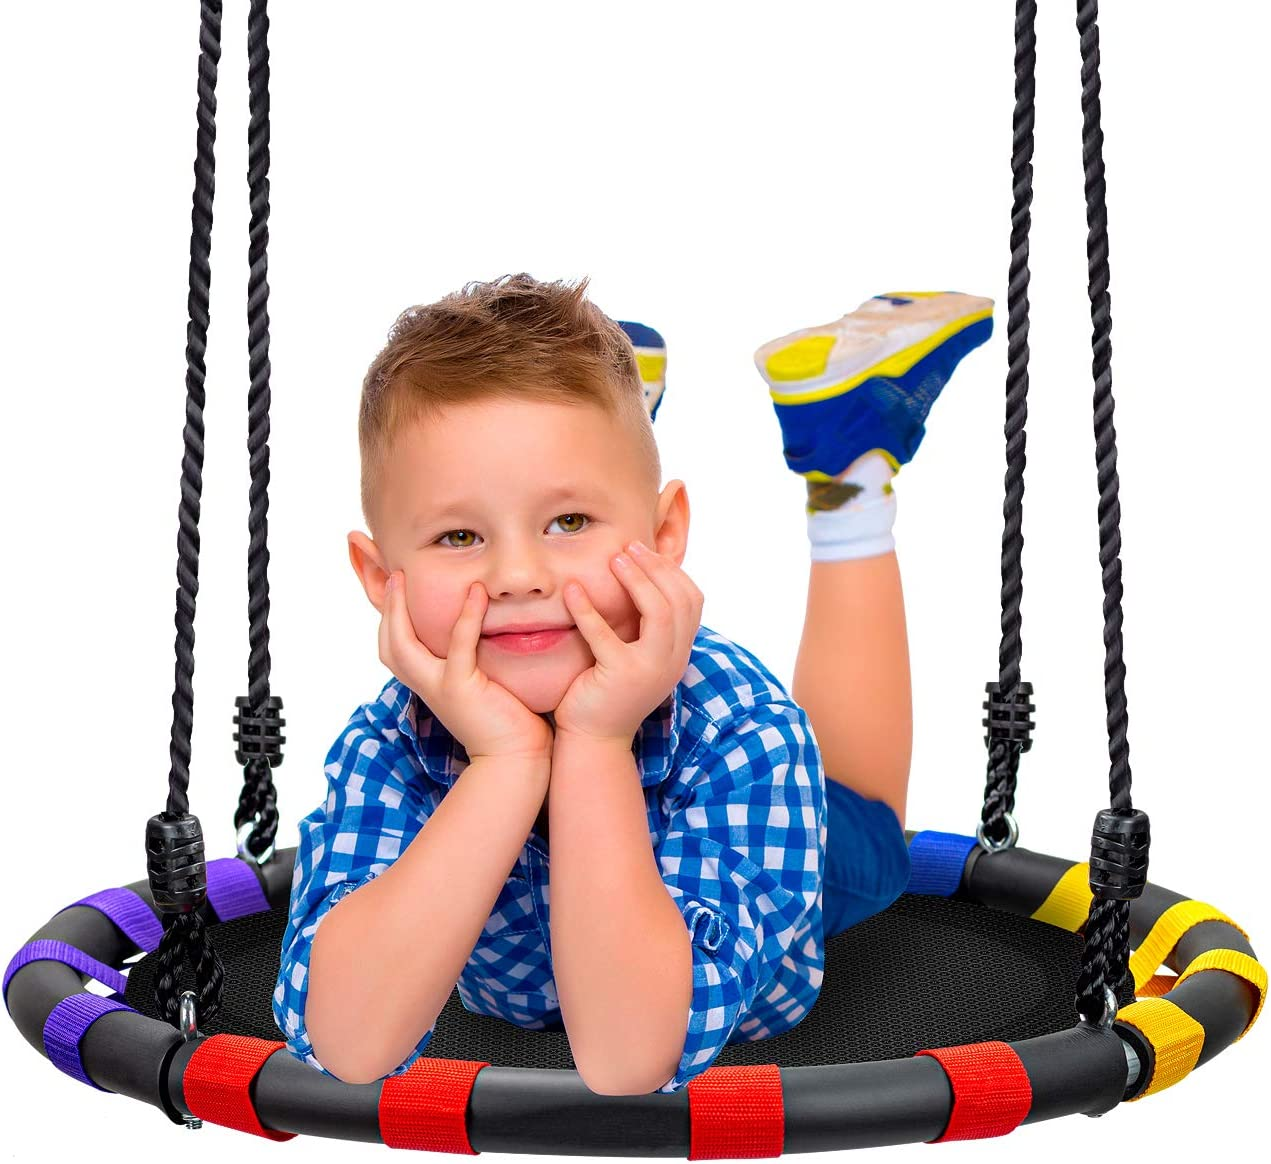 Sorbus Spinner Swing Kids Round Mat Swing Great for Tree, Swing Set, Backyard, Playground, Playroom Accessories Included New Improved 2020 Design 24 Inch